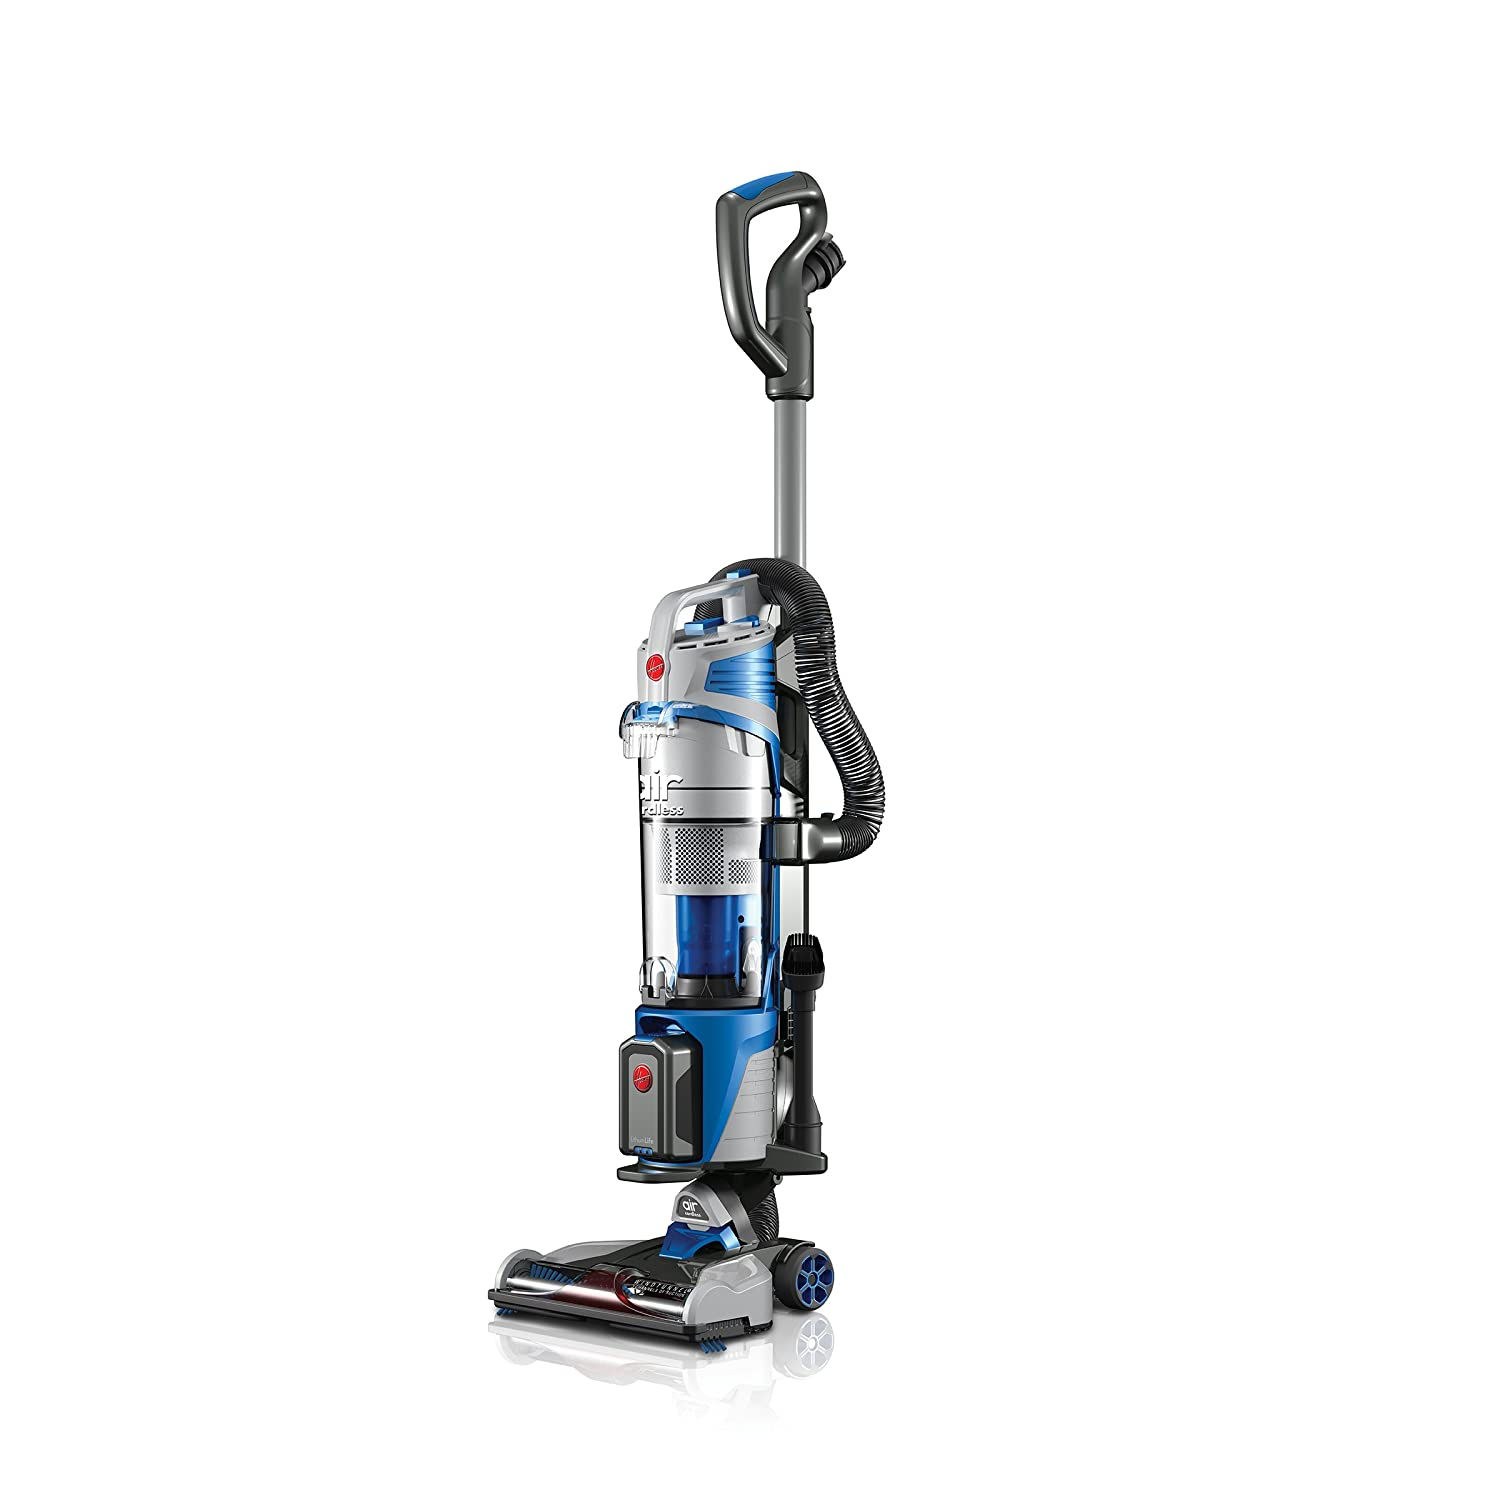 Hoover Best cordless vacuum for hardwood floors